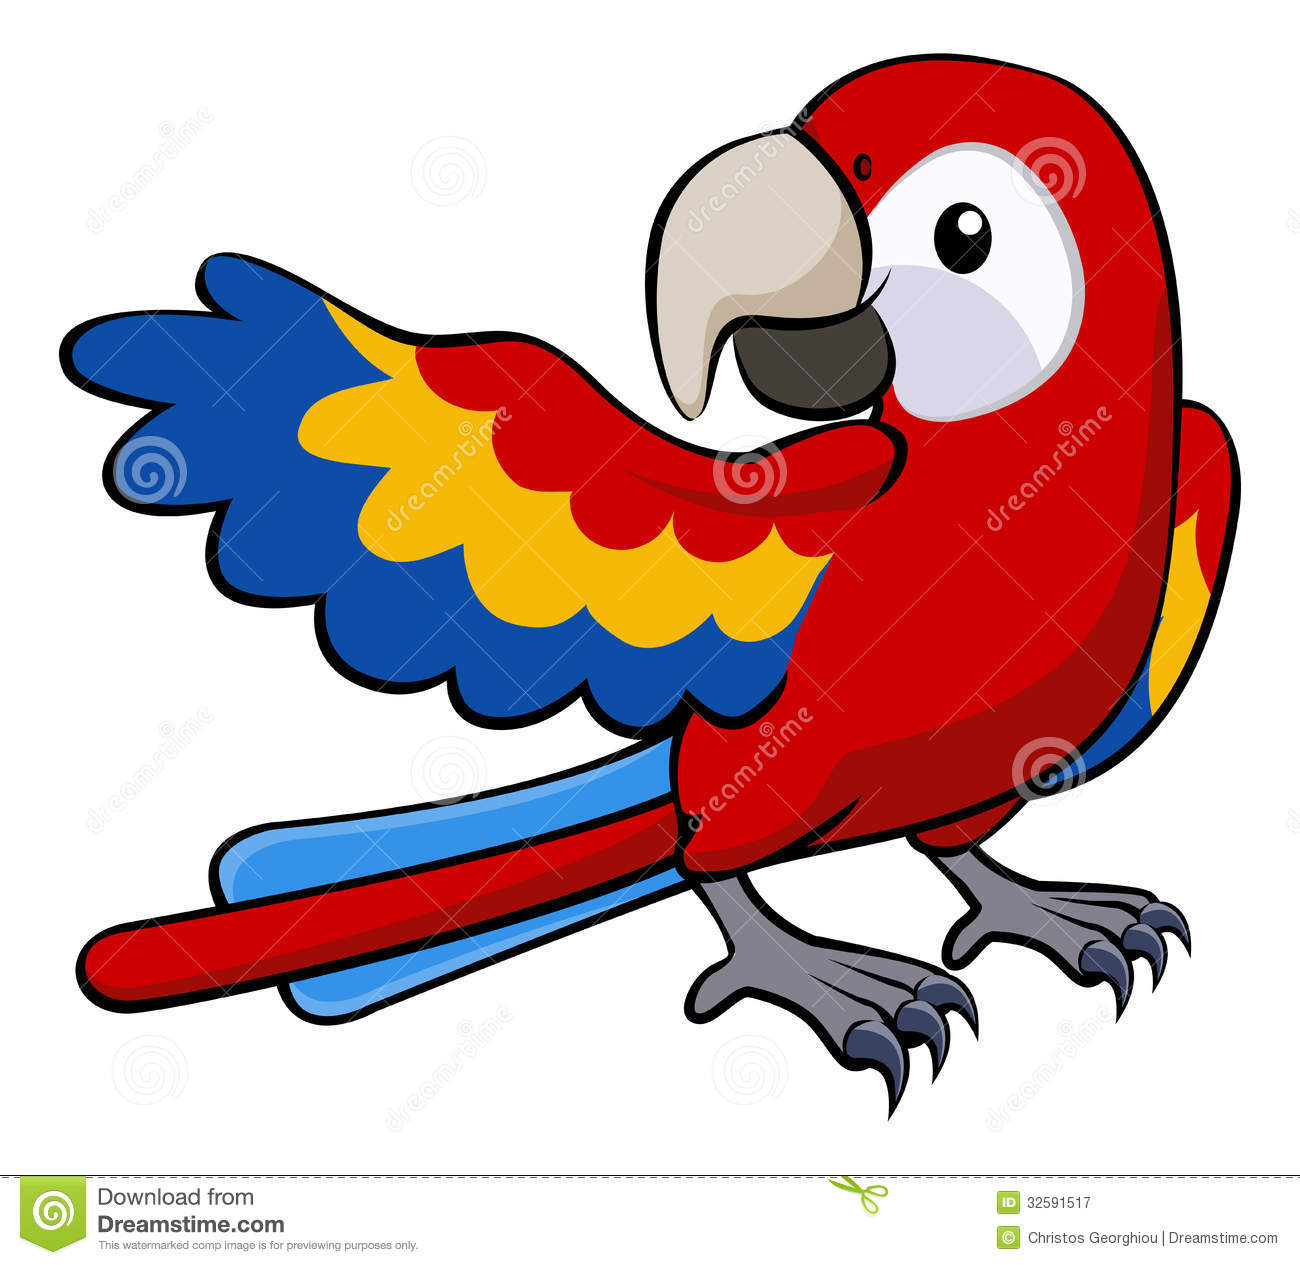 Red Parrot Illustration Royalty Free Stock Photography   Image